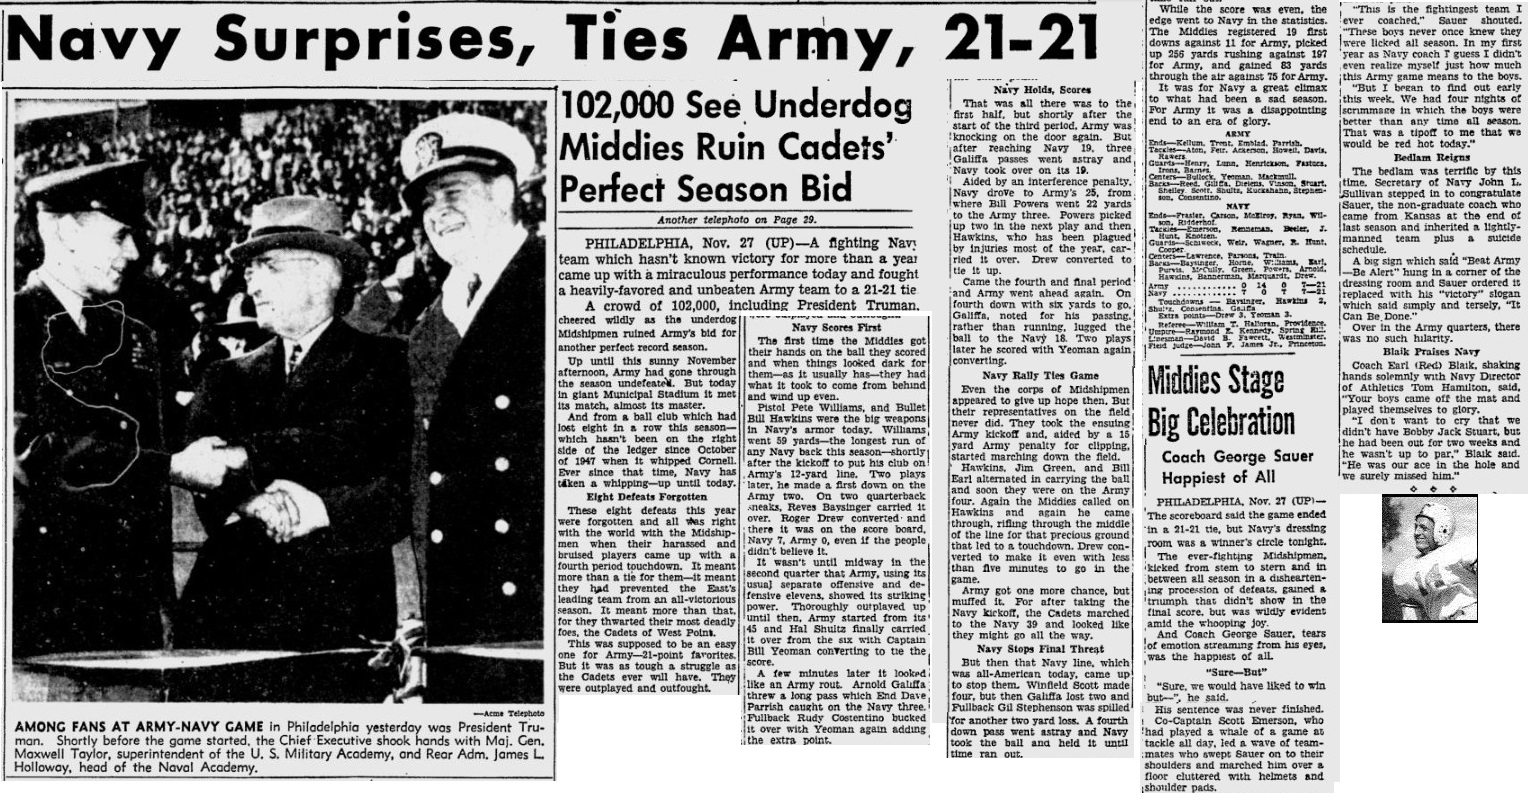 armyfb_1948_vsnavy_pittsburgpress_nov281948